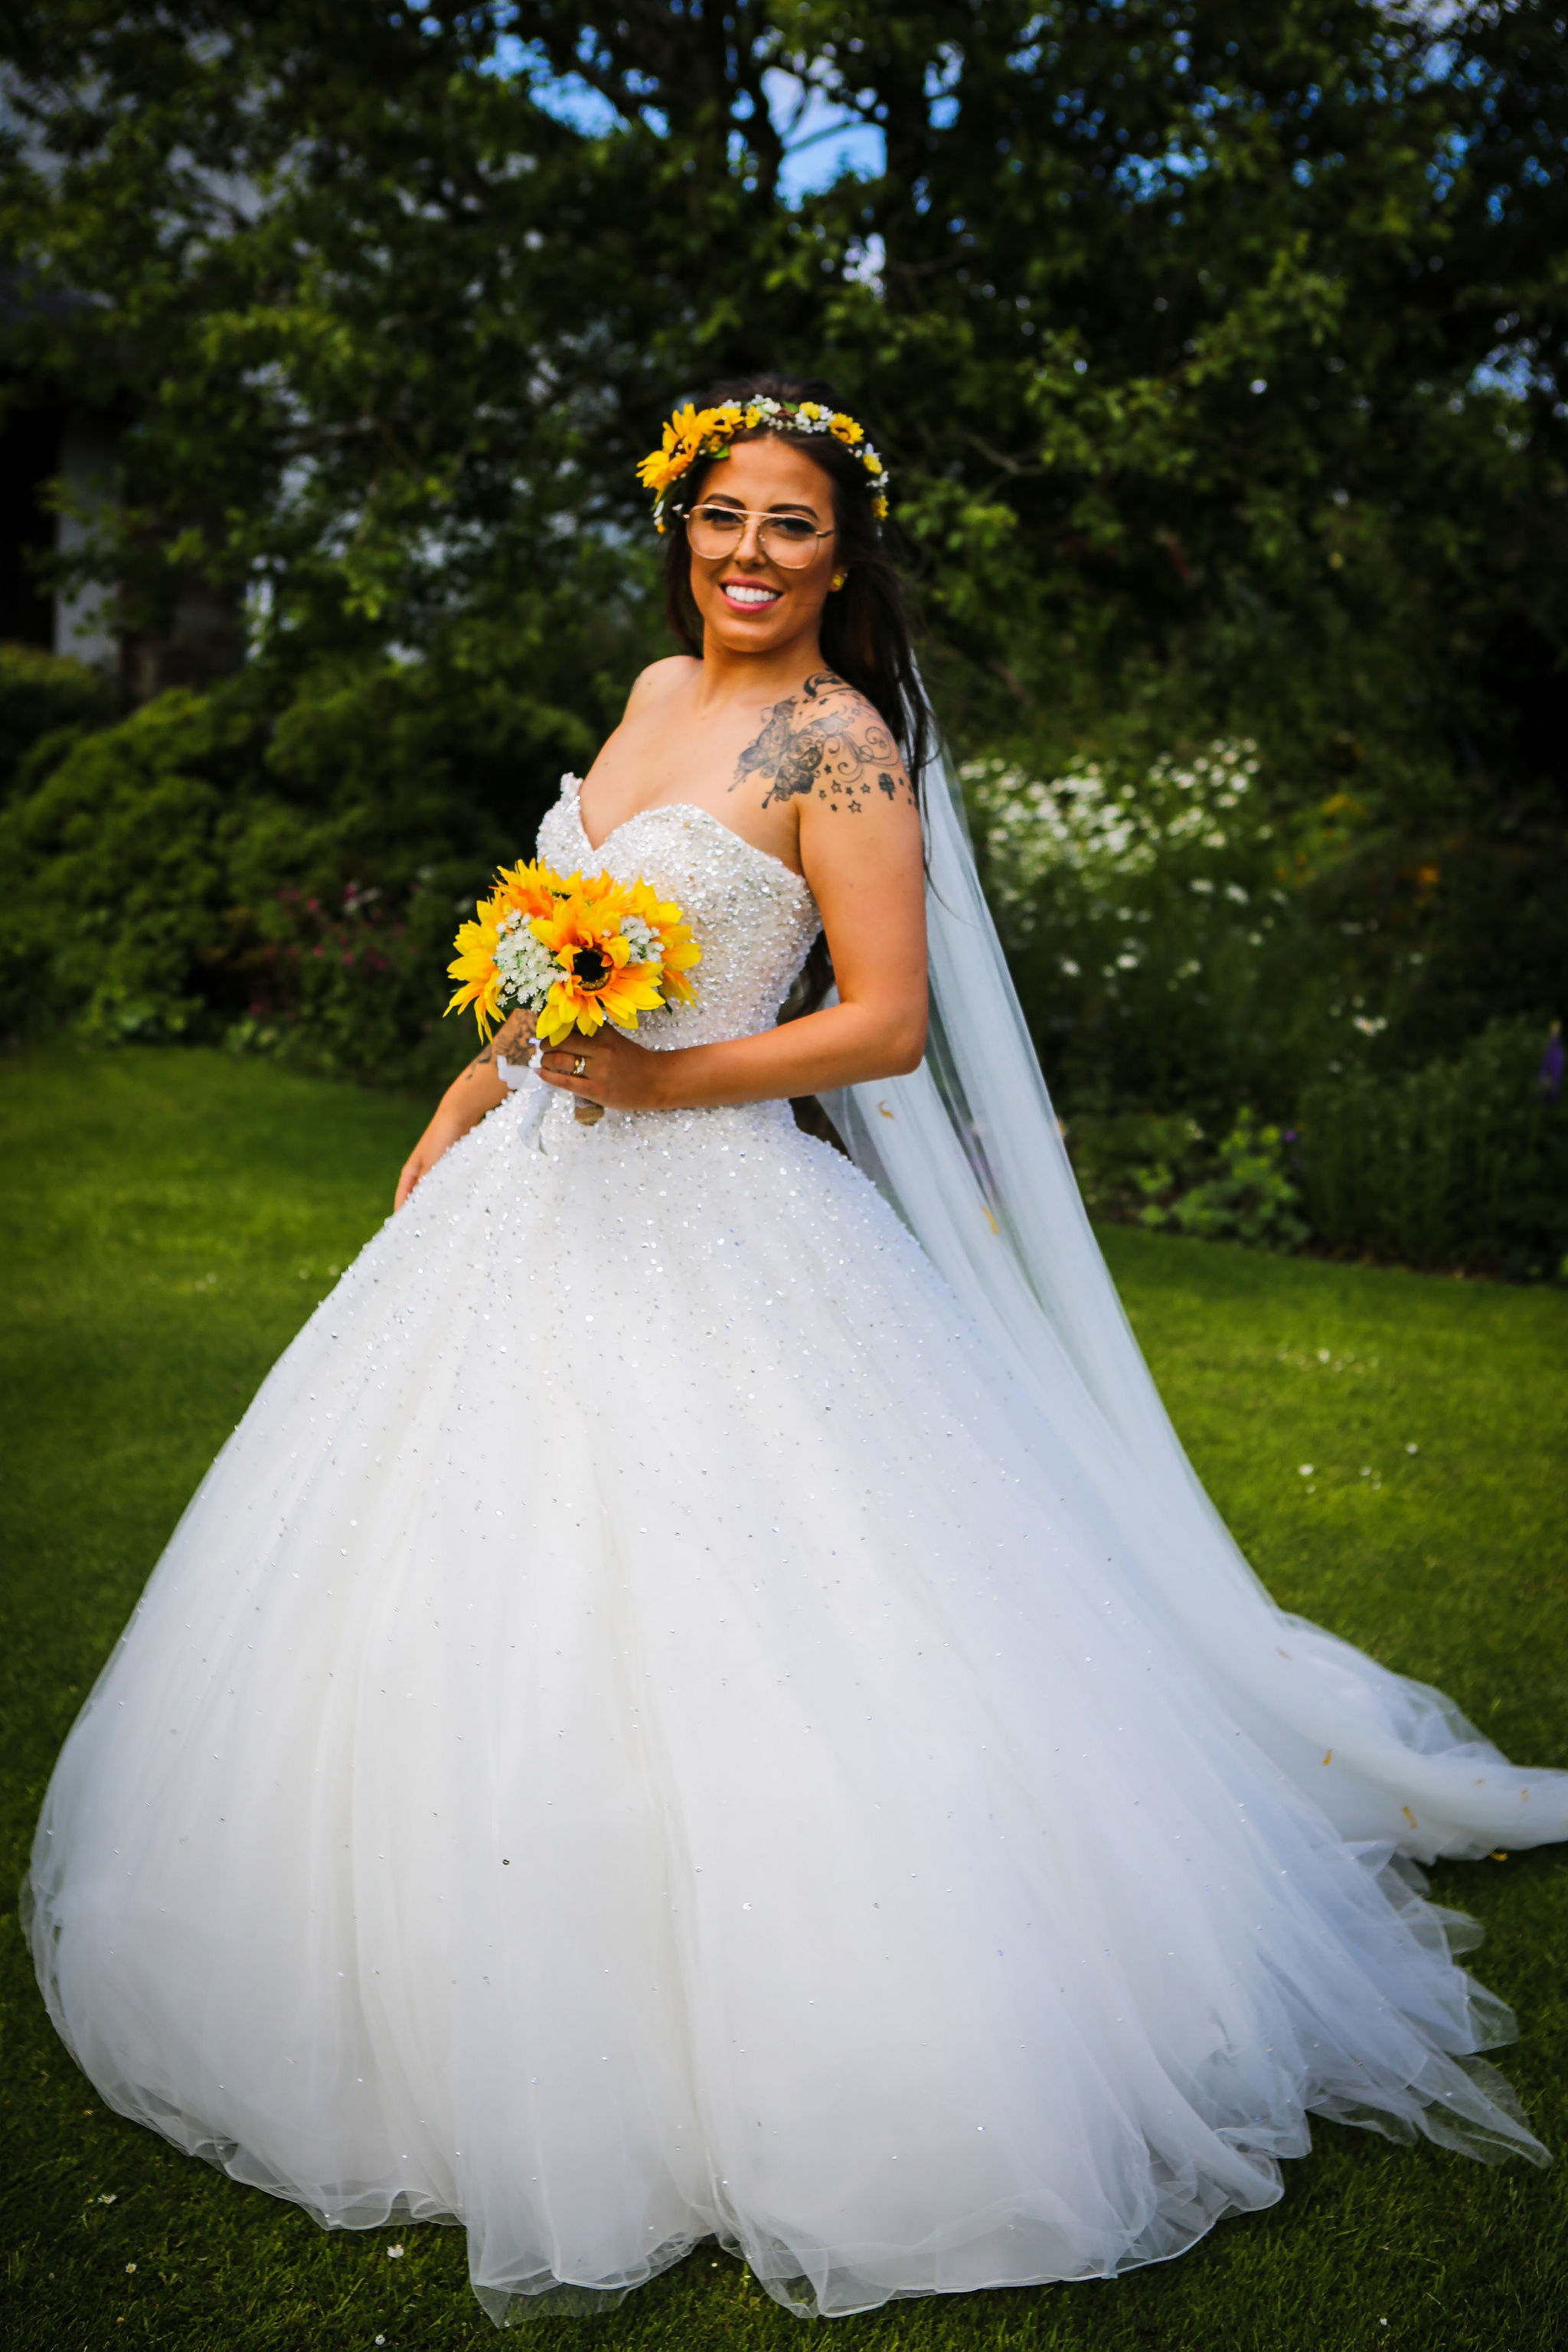 Harriet&Rhys Wedding - Magical sunflower wedding - bridalwear inspiration